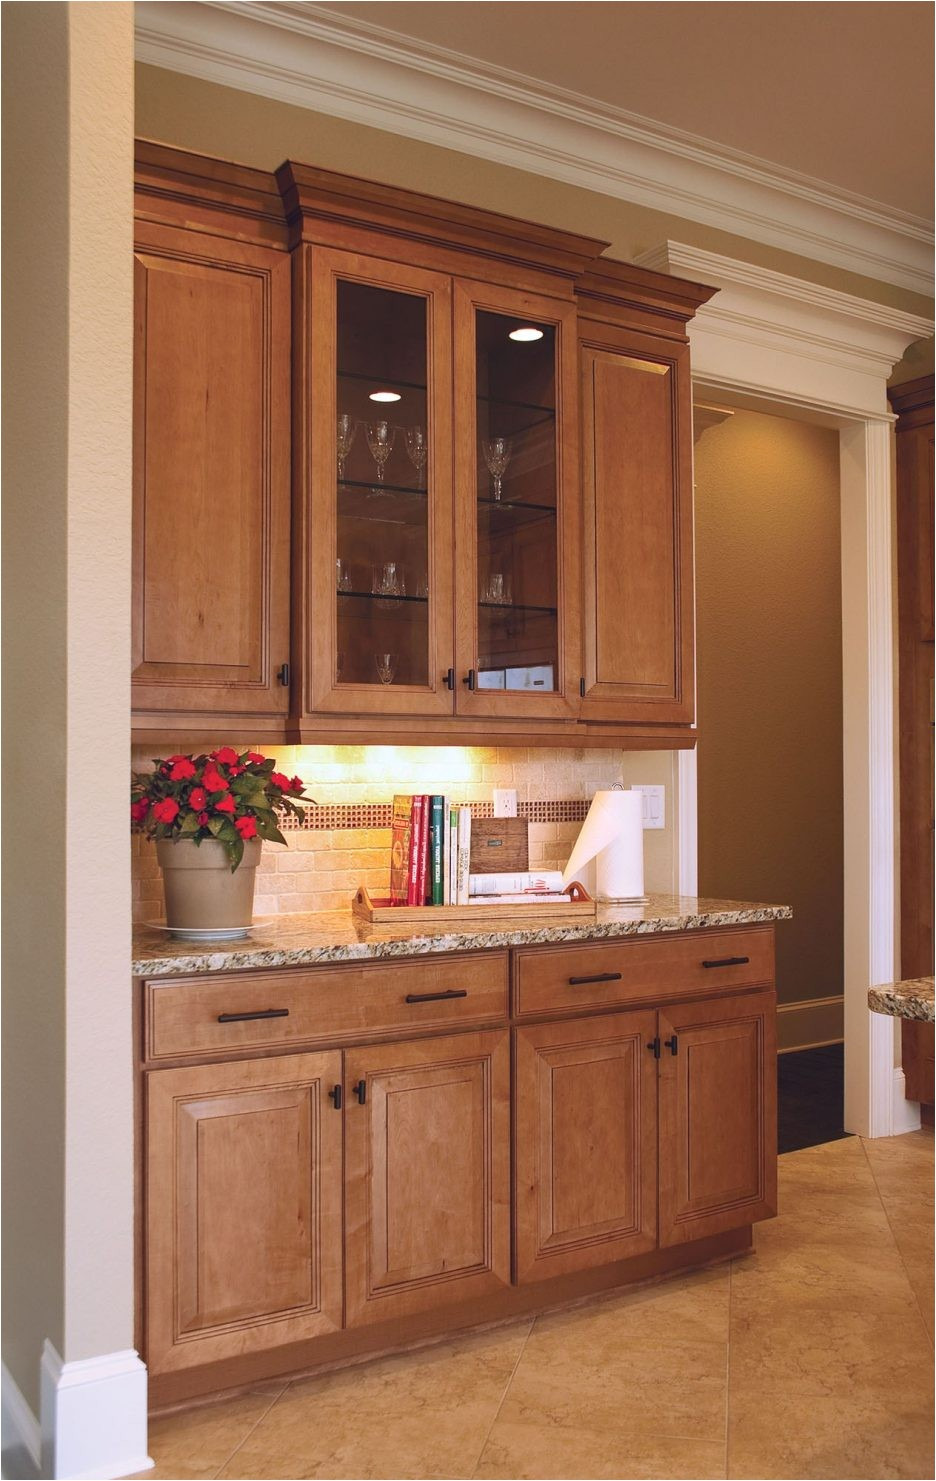 replacement cabinet doors and drawer fronts lowes home depot cabinet refacing cost cheap cabinet doors kitchen cabinet of replacement cabinet doors and drawer fronts lowes